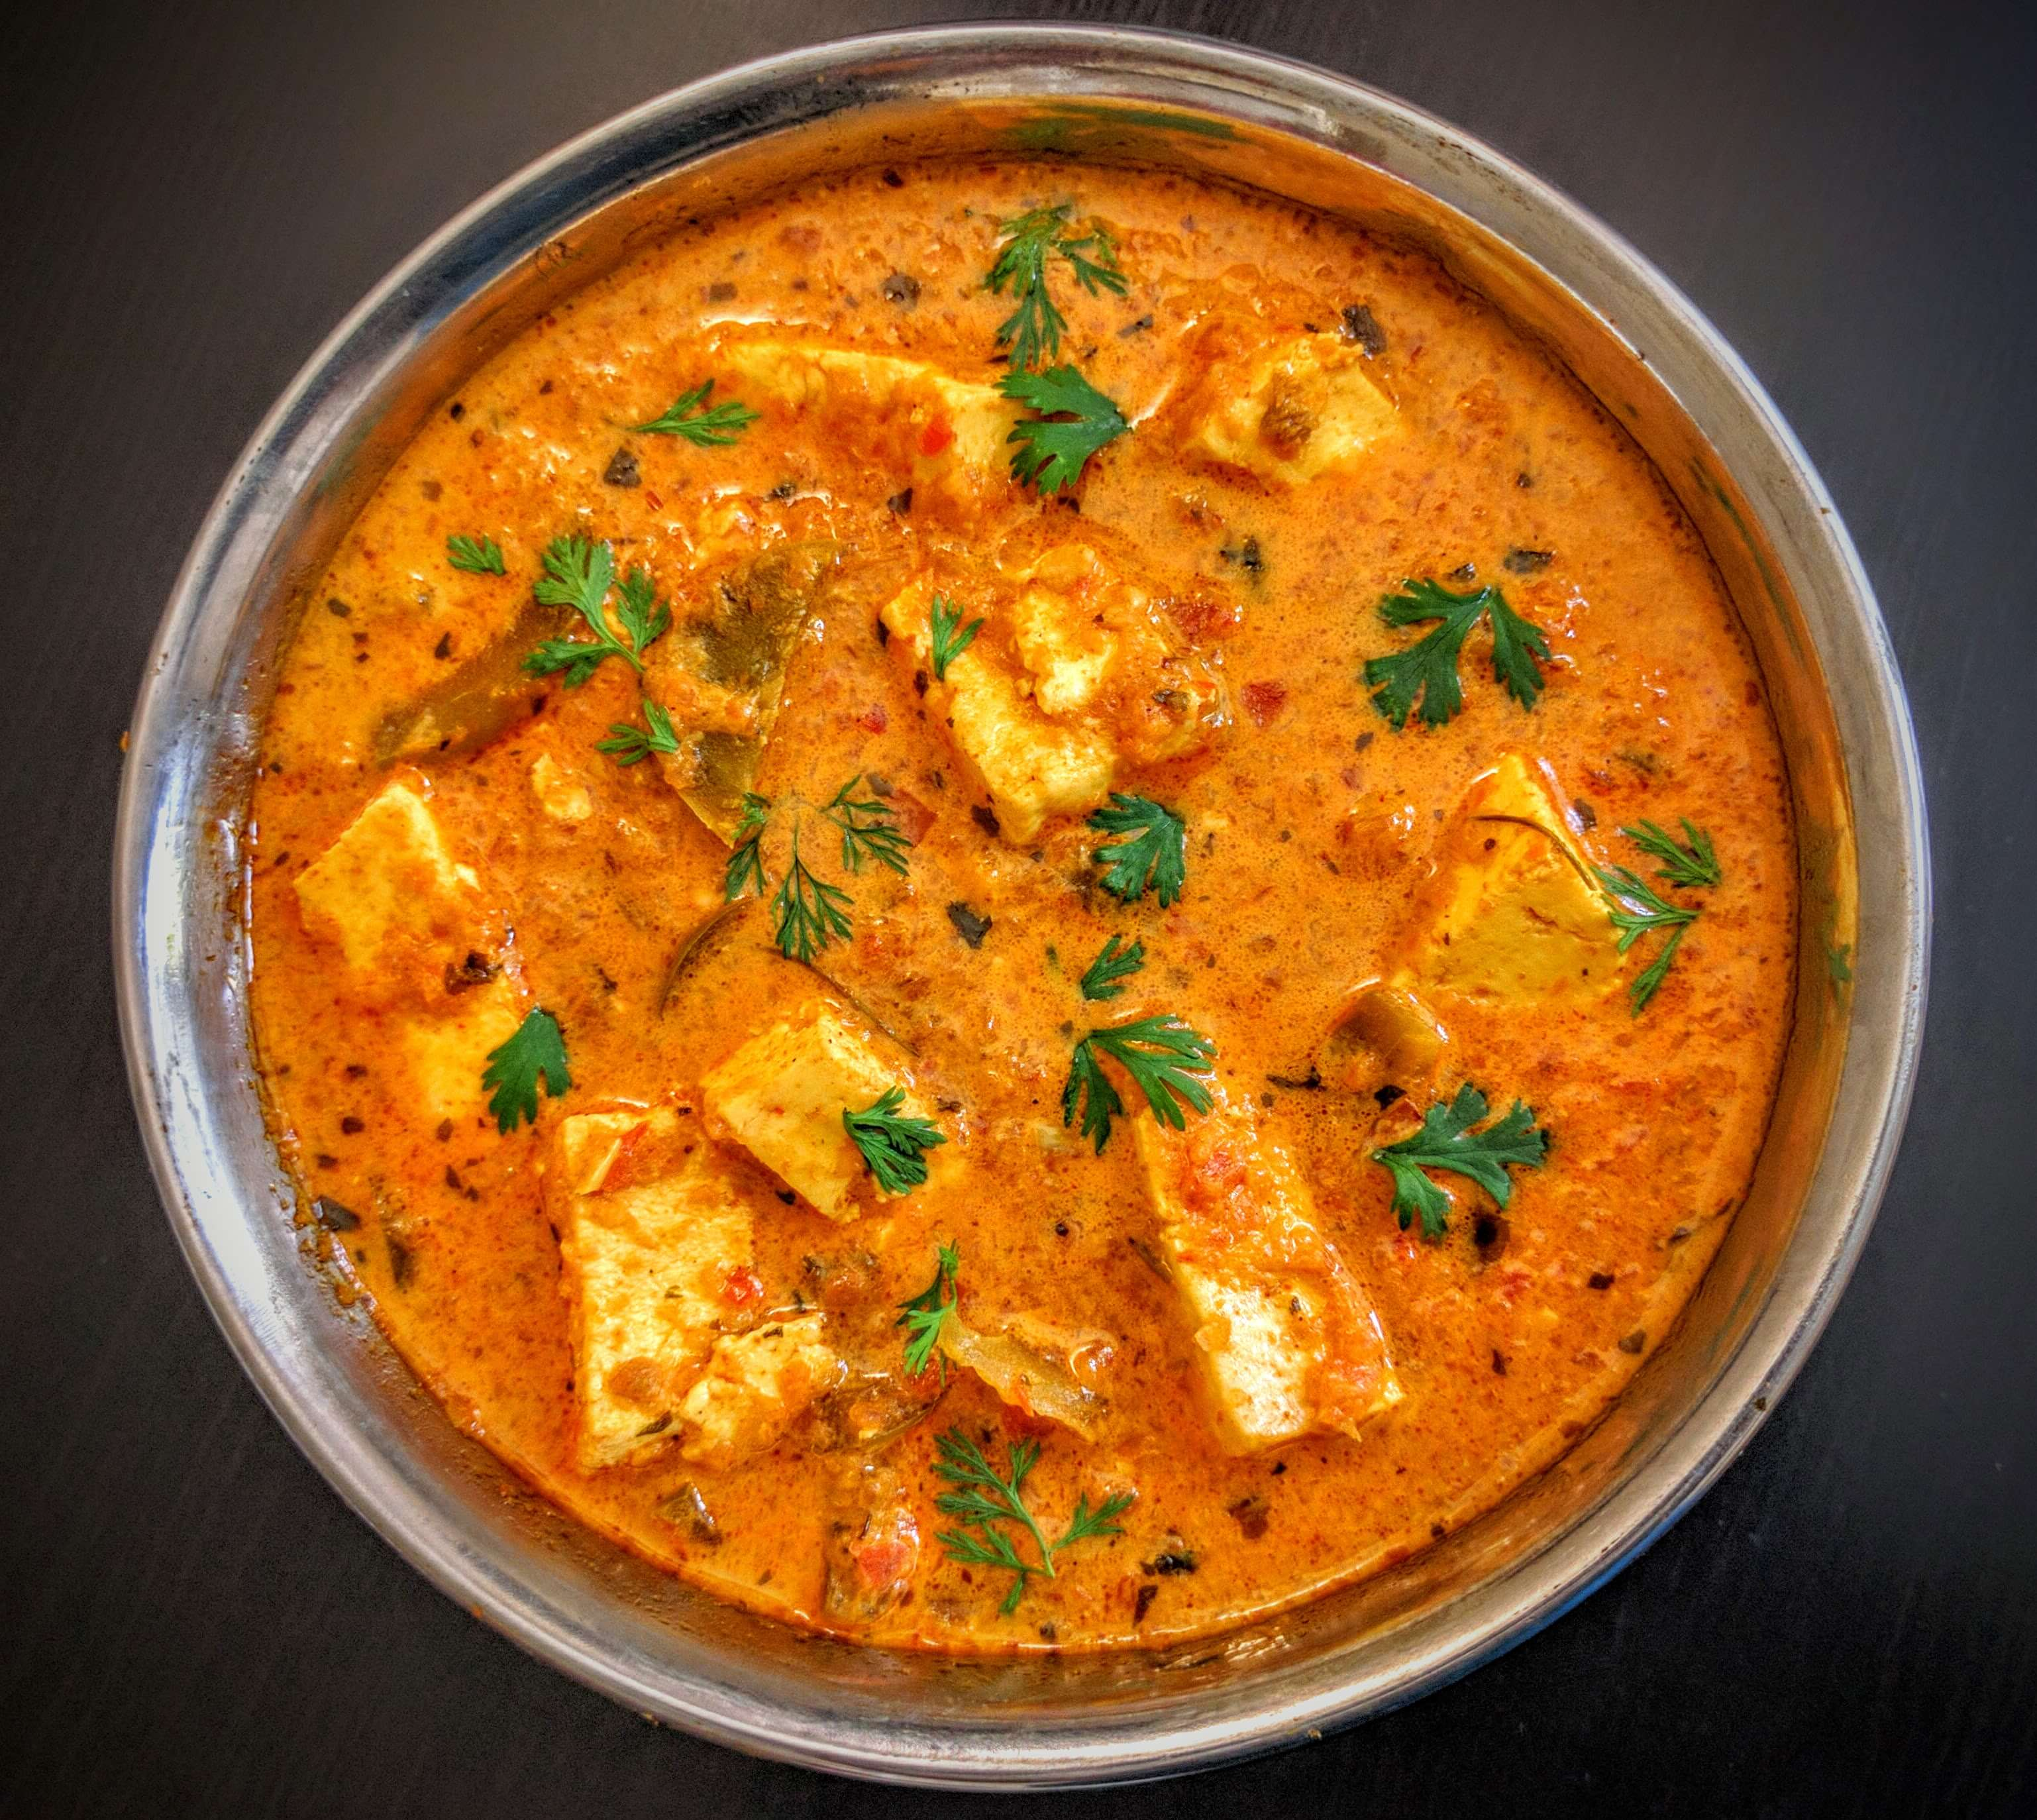 Kadai Paneer Gravy Recipe   How to make Kadai Paneer Gravy     Kadai Paneer Gravy Recipe Step By Step Instructions